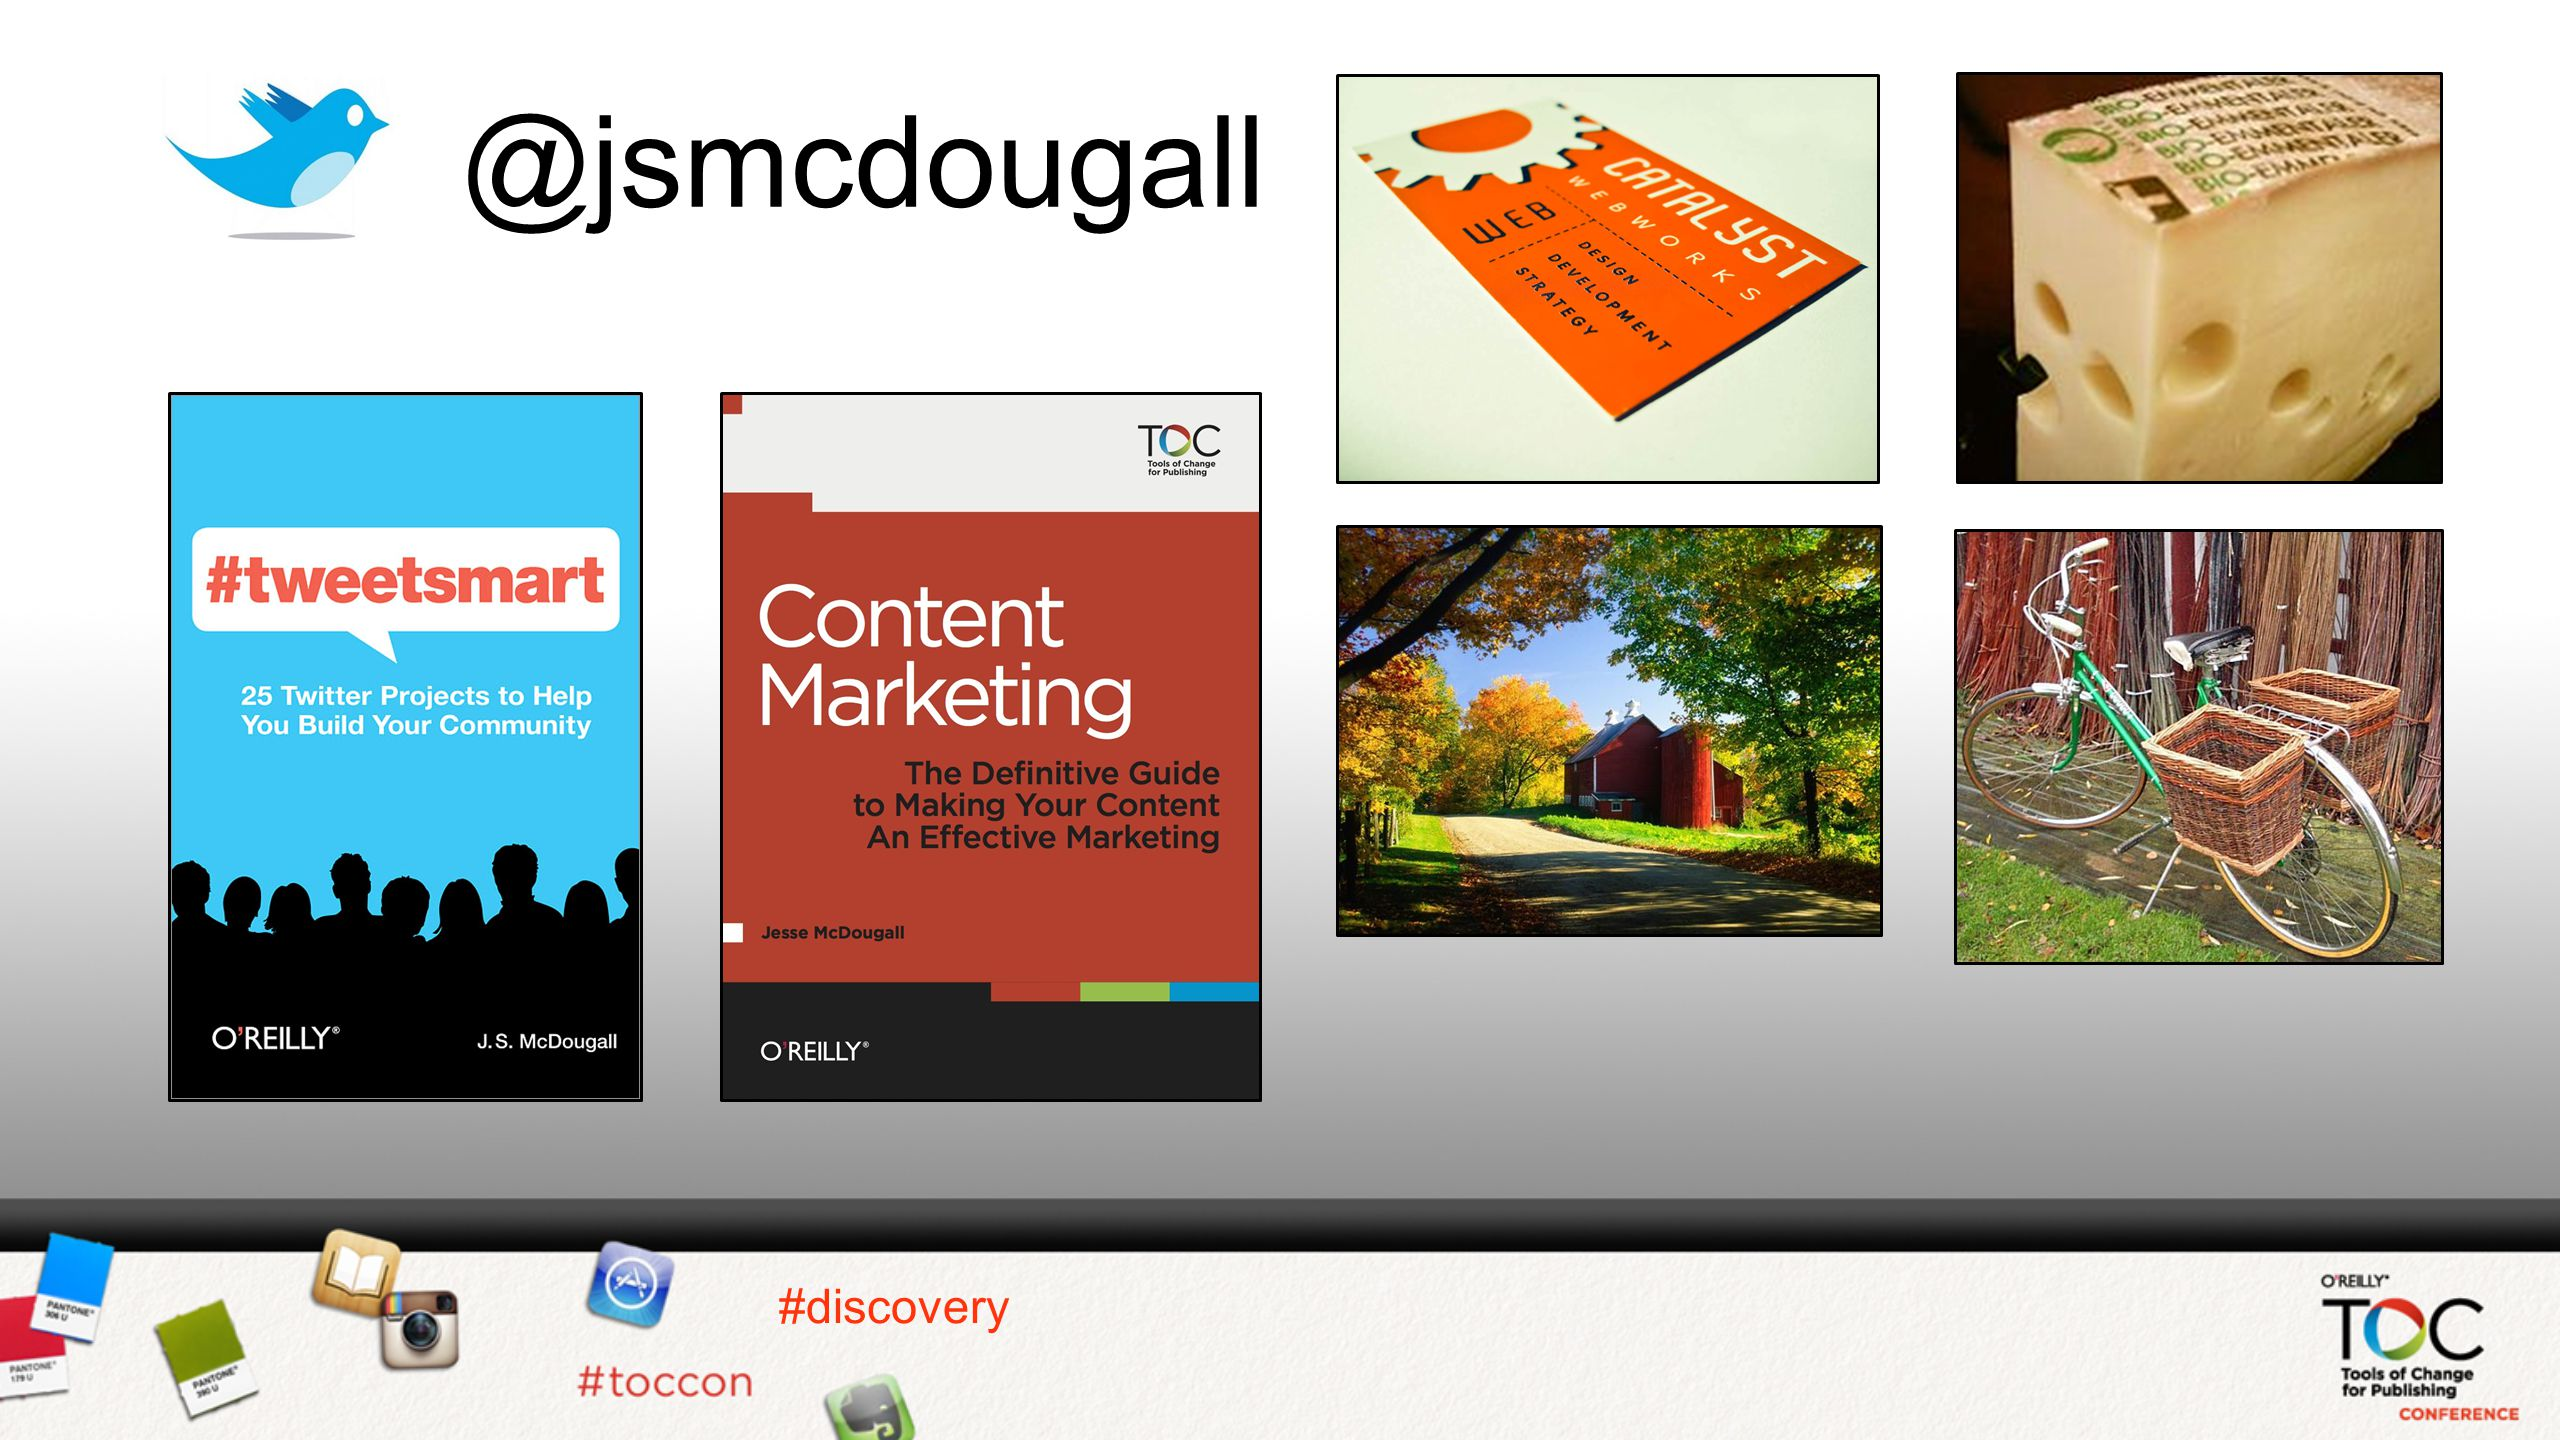 @jsmcdougall #discovery